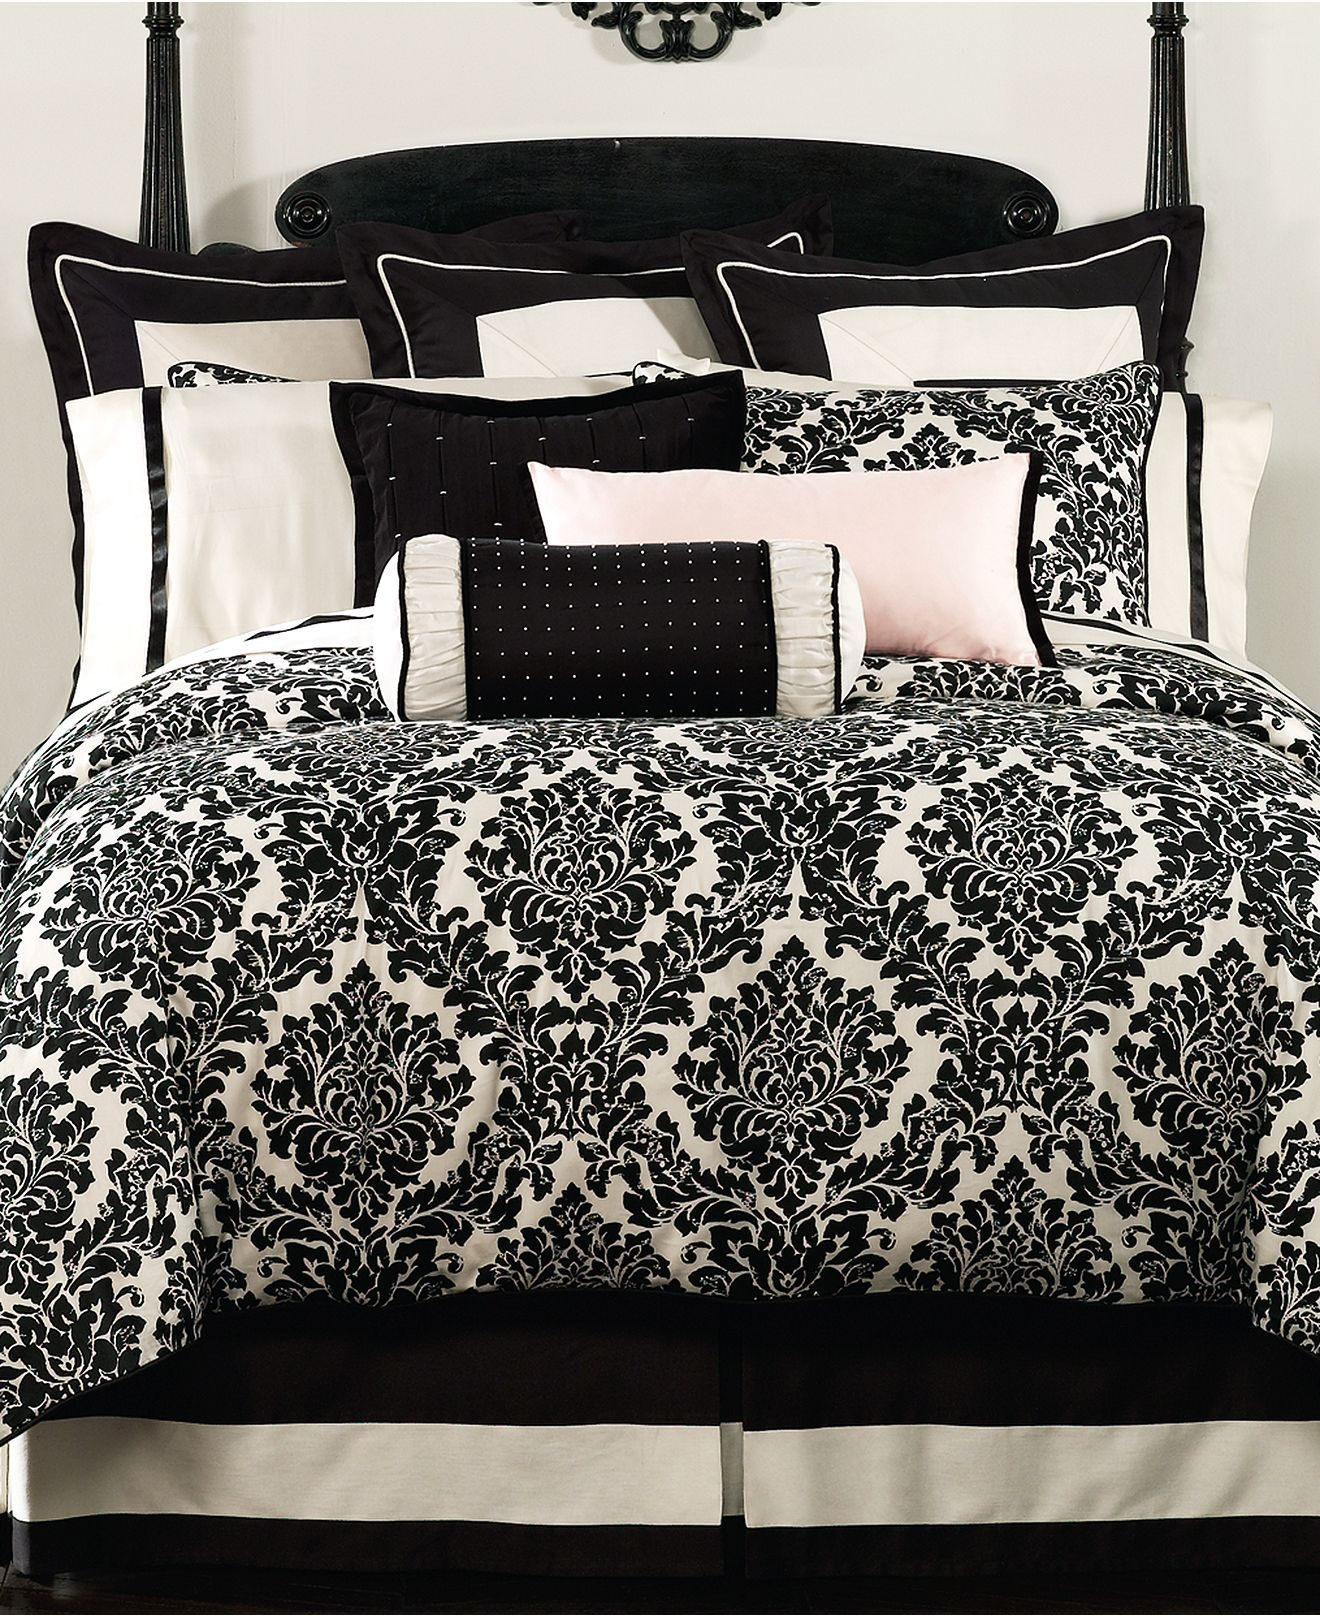 black and white damask duvet cover black and white damask duvet cover   foter  rh   foter